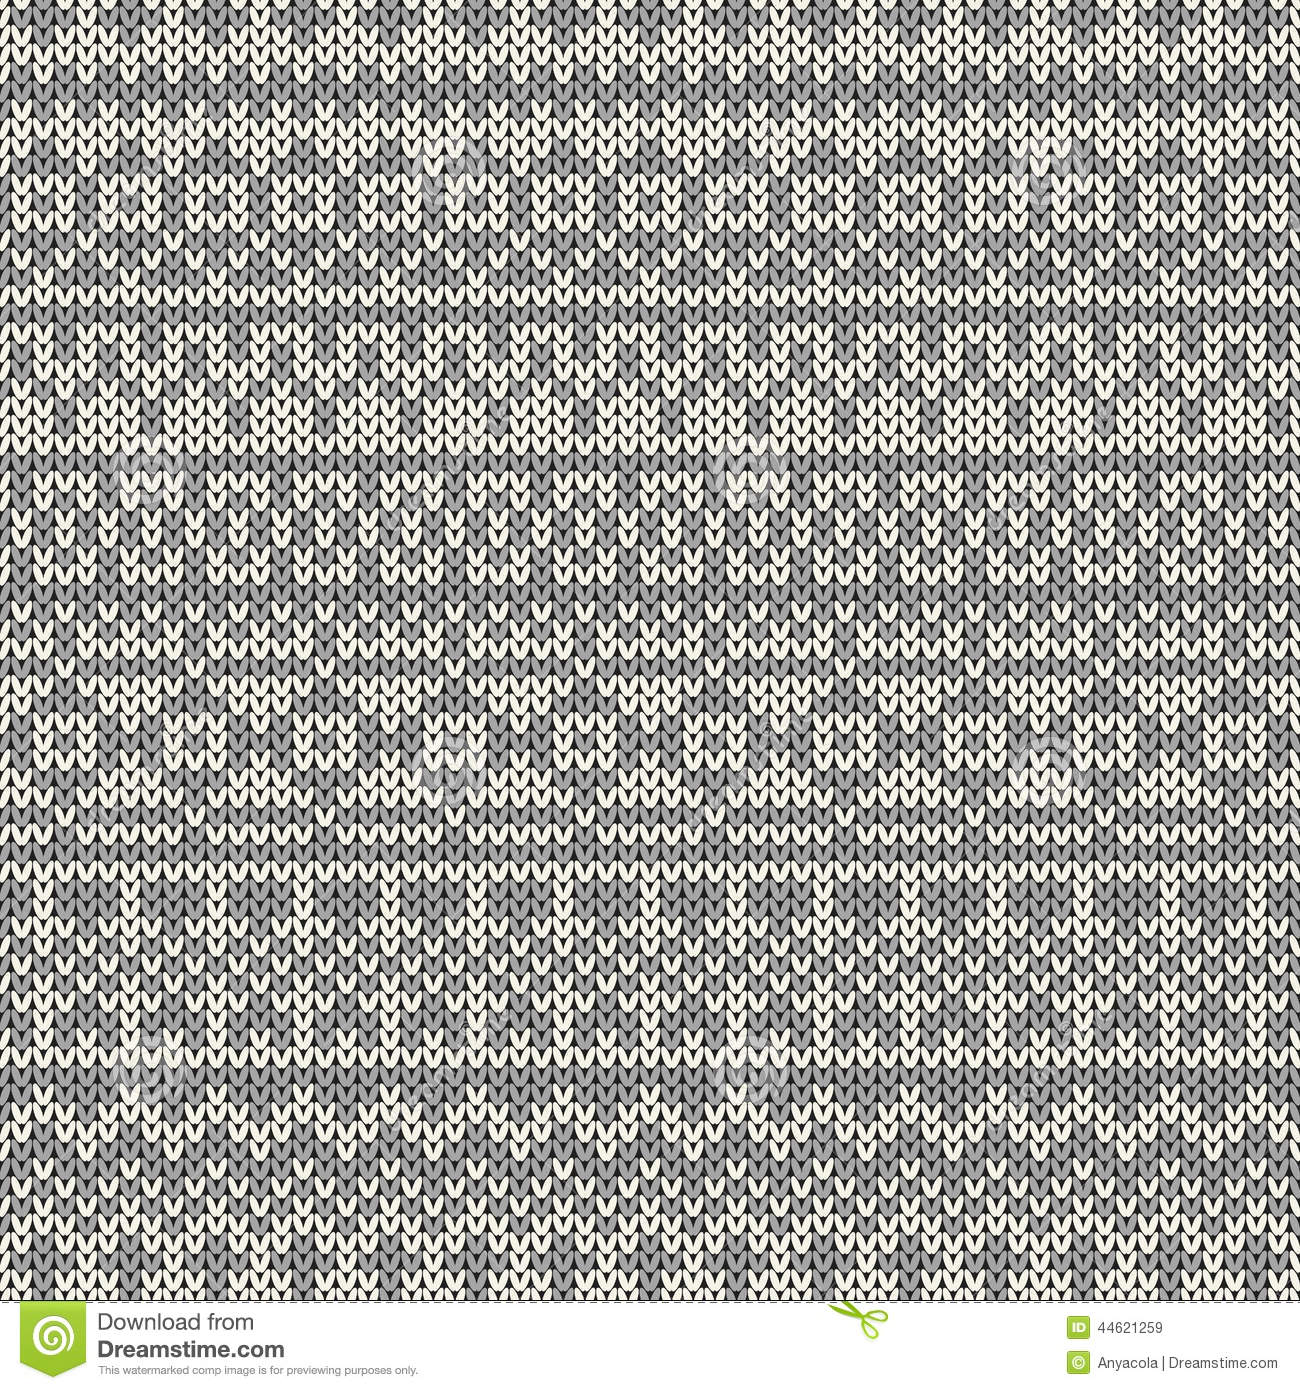 Free Baby Knitting Patterns For Blankets : Seamless Knitted Pattern In Traditional Fair Isle Stock Vector - Image: 44621259